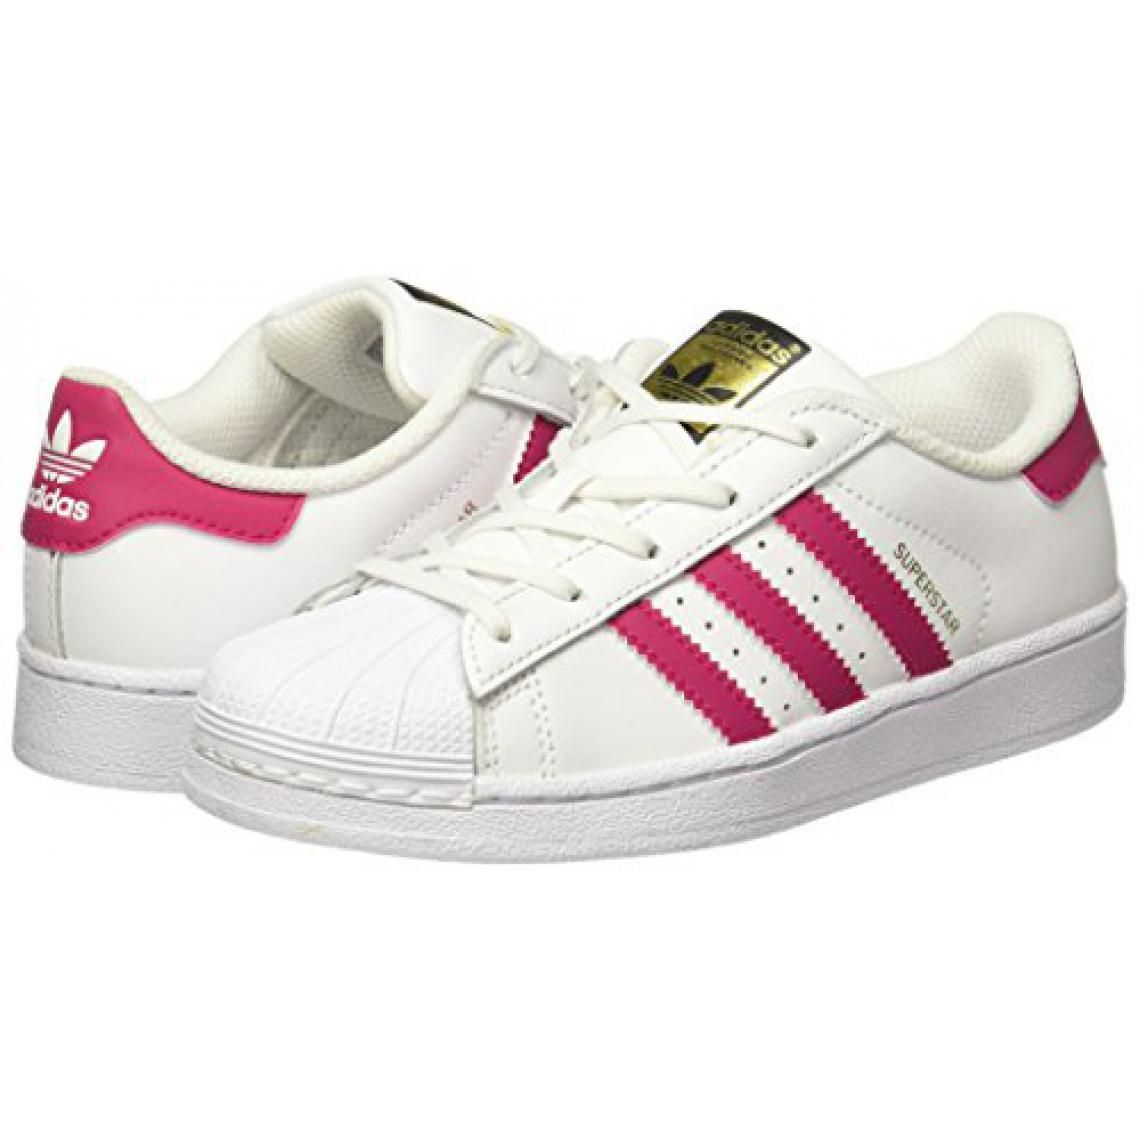 Baskets Superstar Adidas Originals fille - Blanc et Rose ...